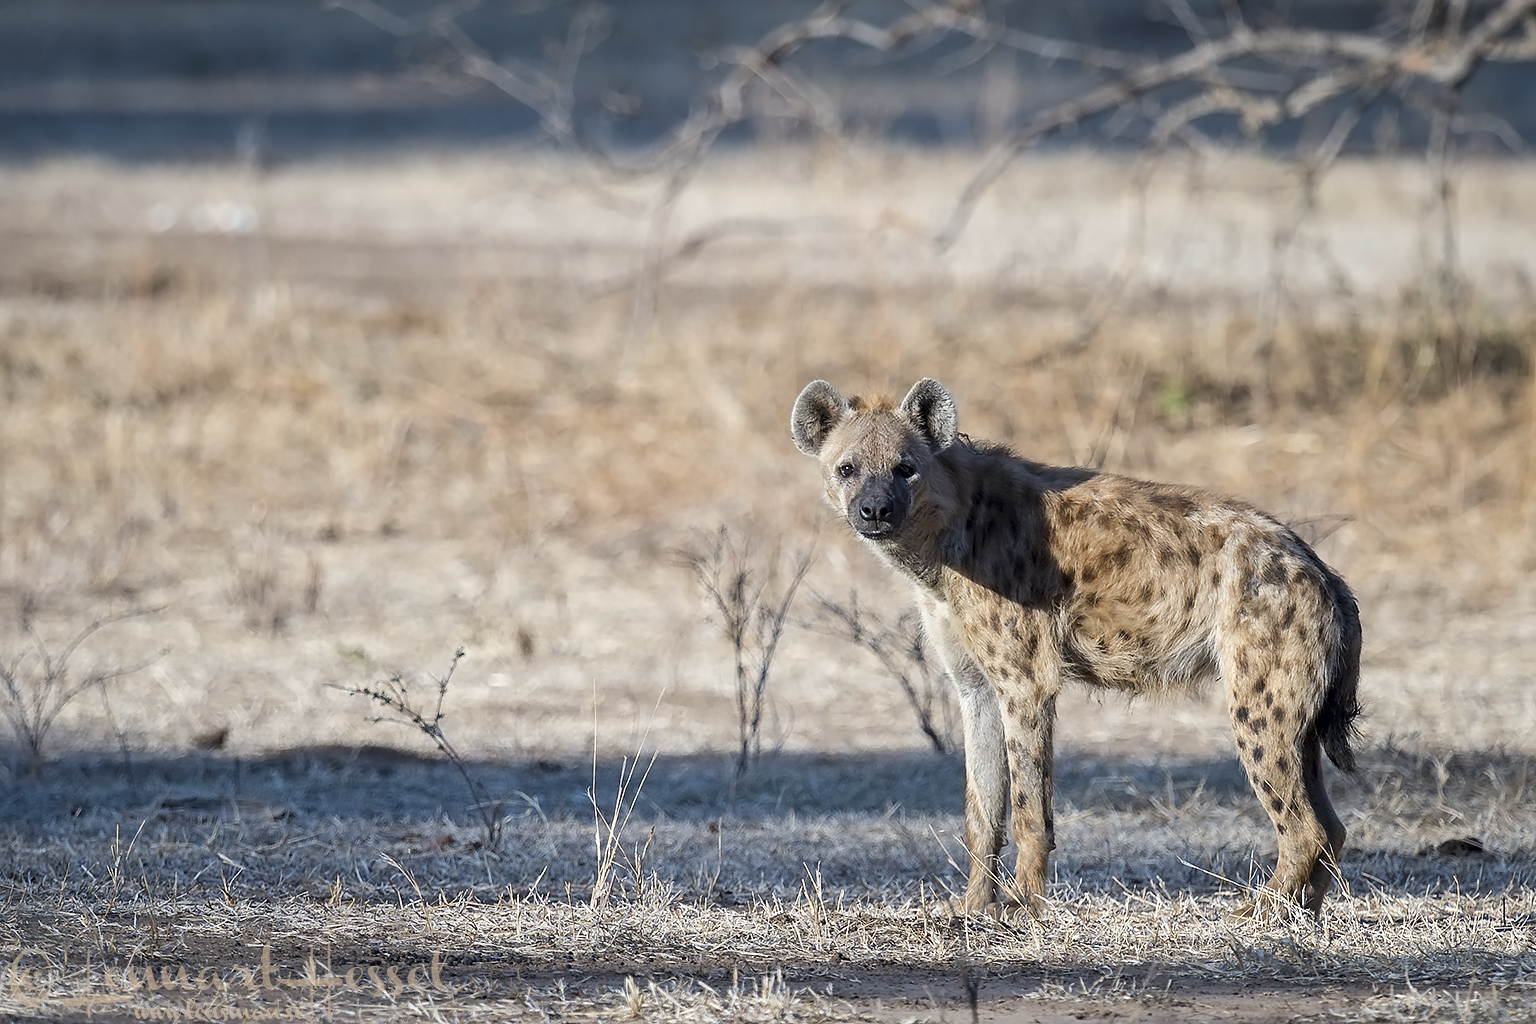 Spotted Hyena Mana Pools National Park Zimbabwe